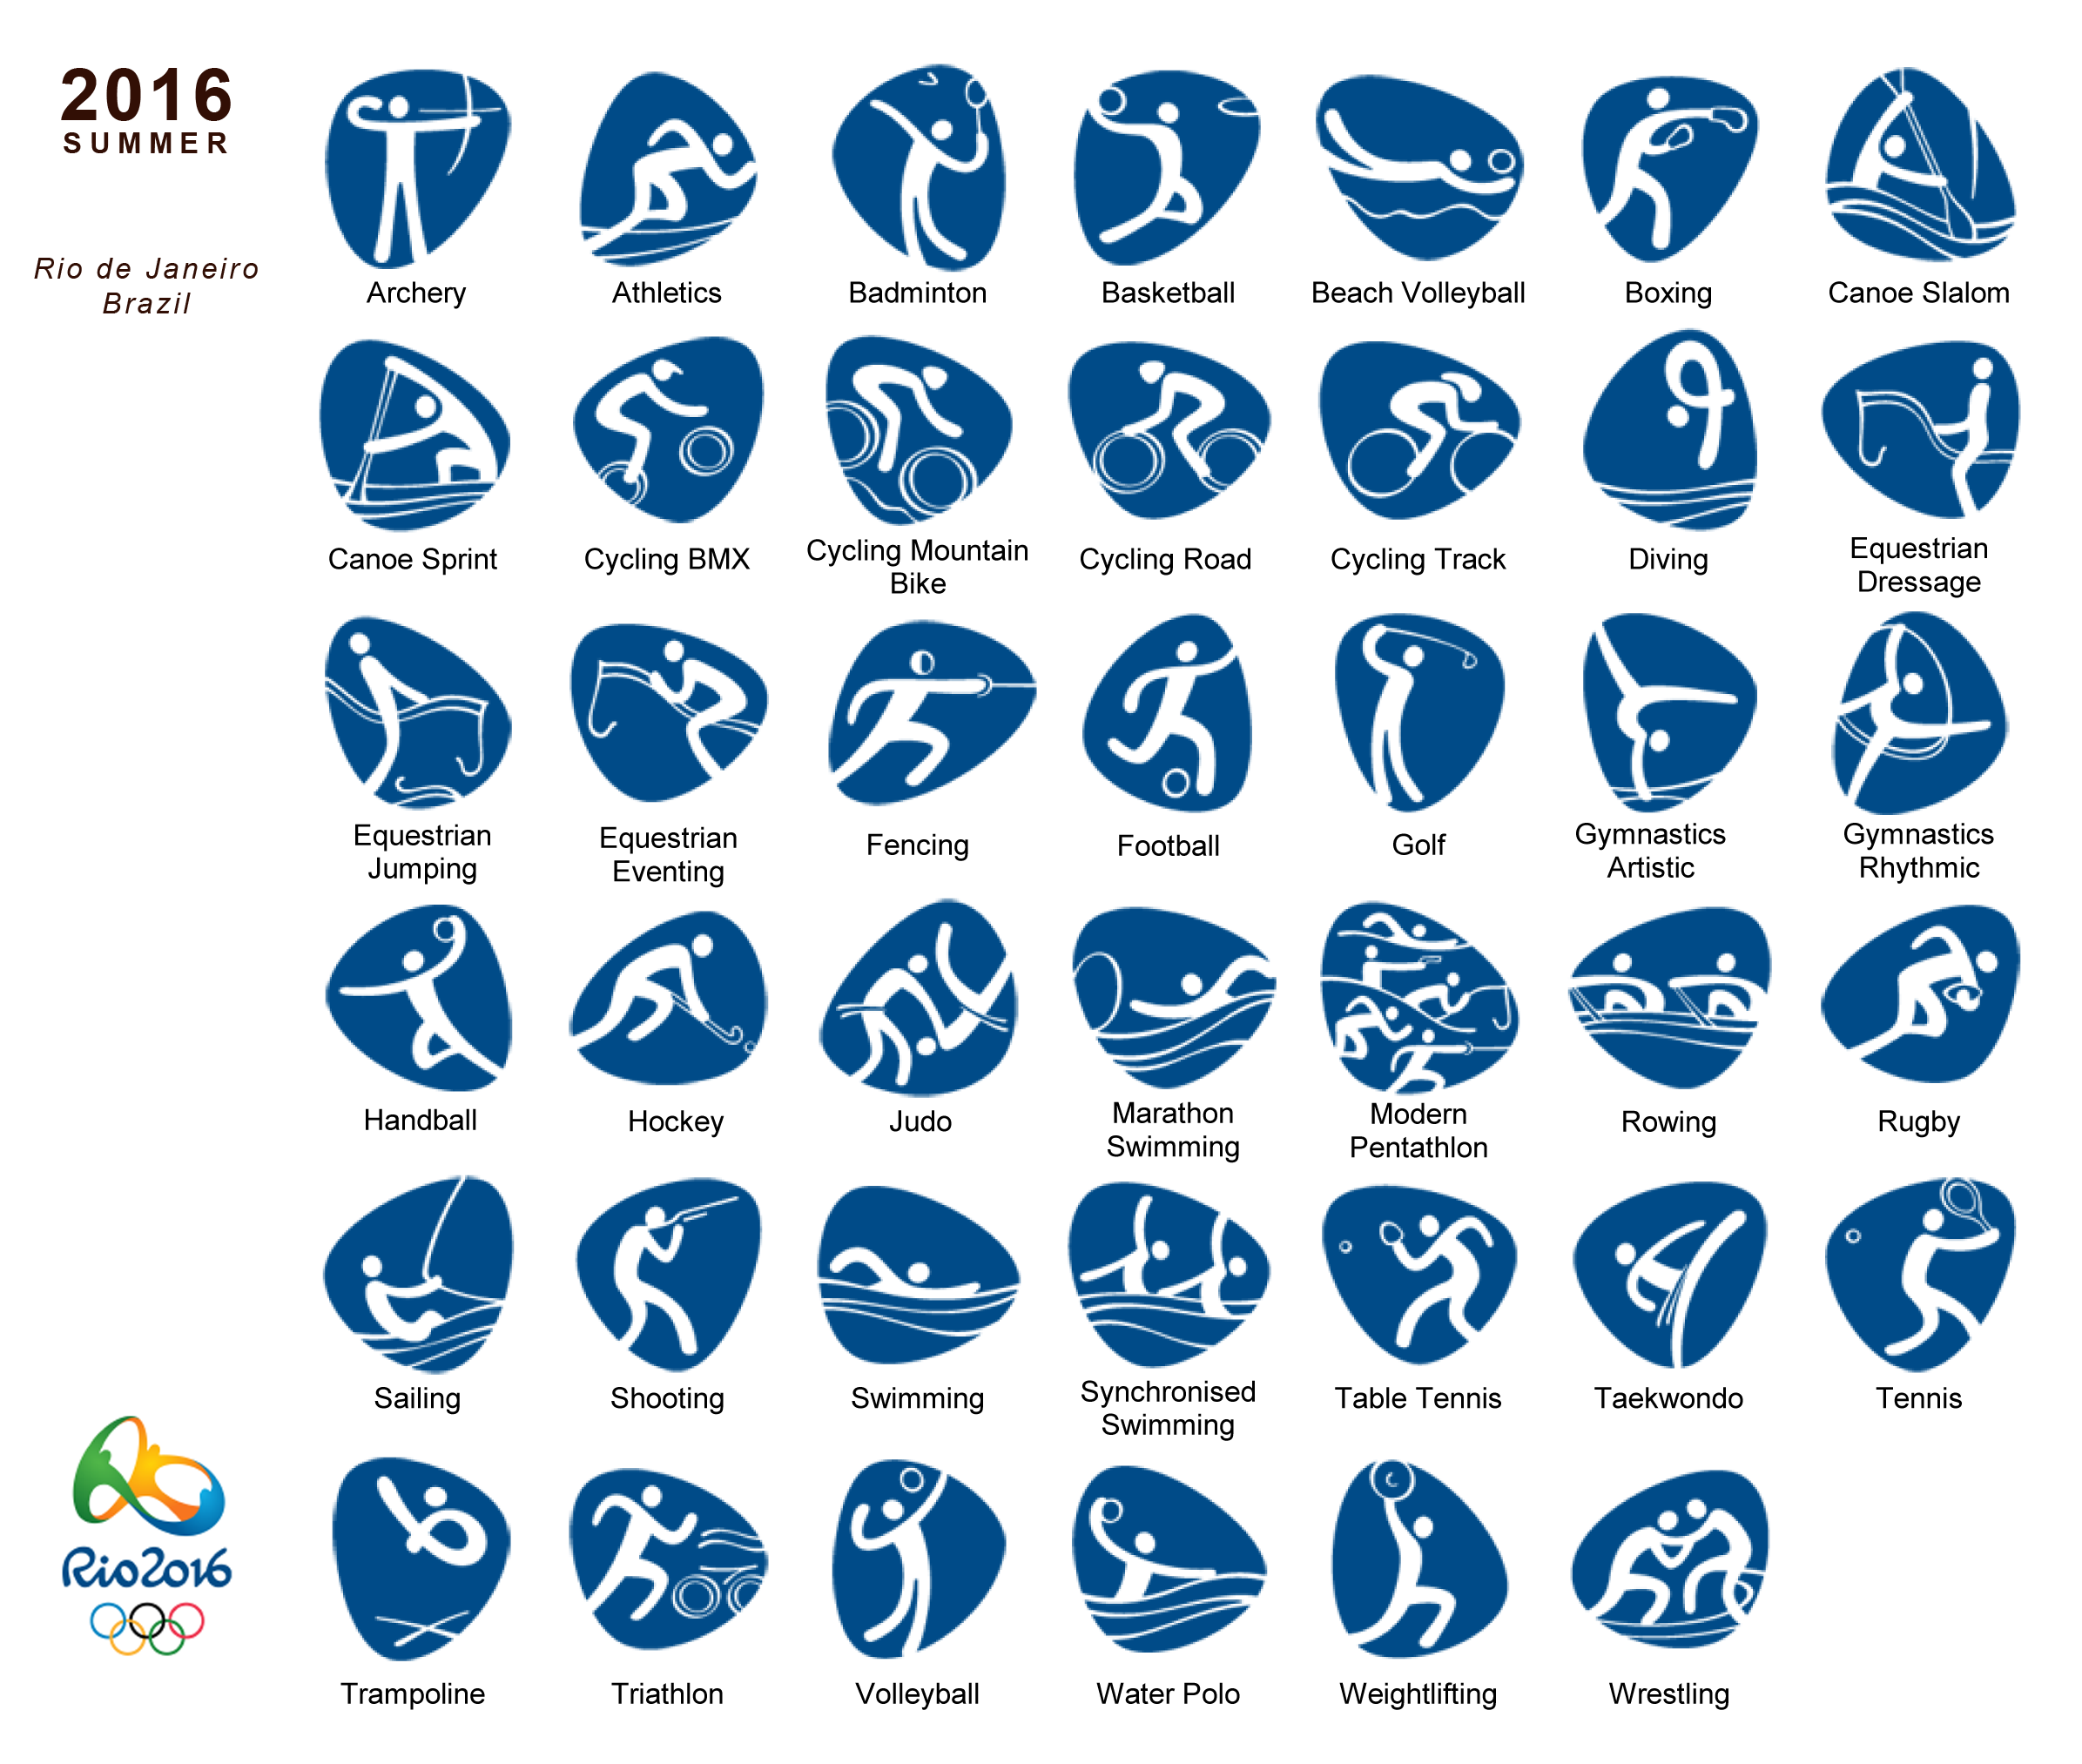 The Sports Pictograms Of The Olympic Summer Games From Tokyo 1964 To Rio 2016 Pictogram Olympic Games Summer Games